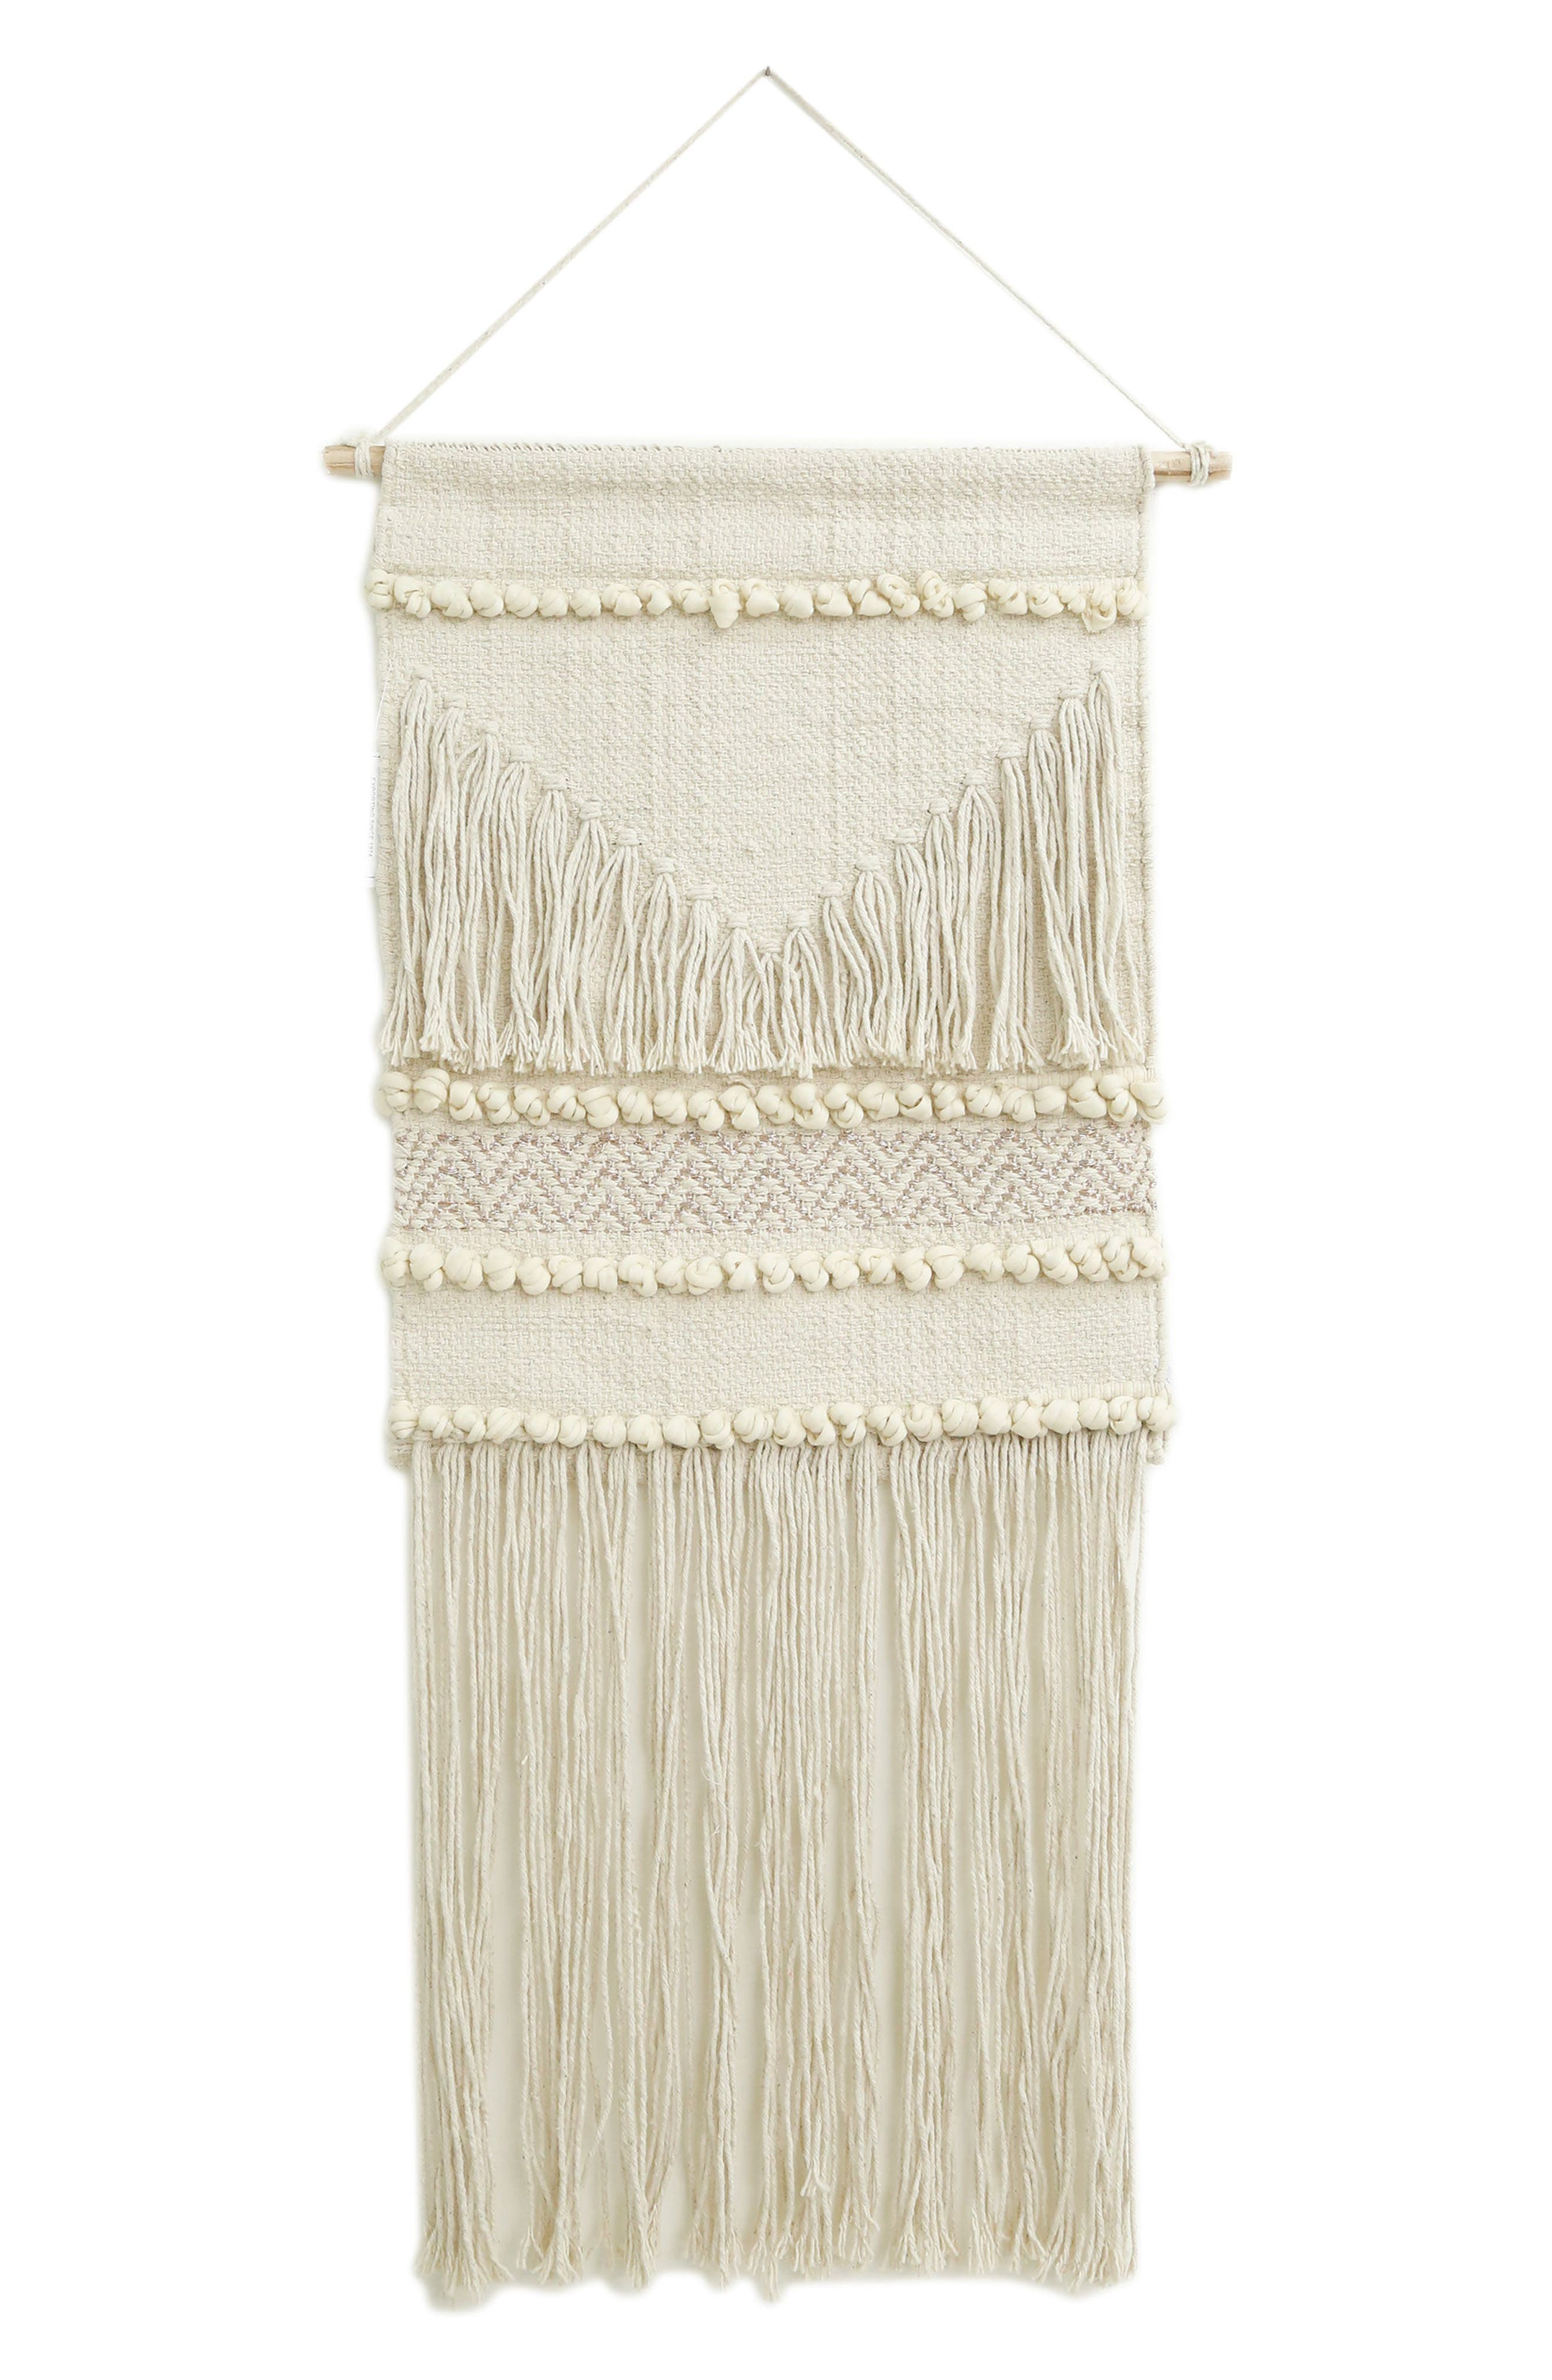 Aya Handwoven Wall Hanging,                             Main thumbnail 1, color,                             Ivory/Gold